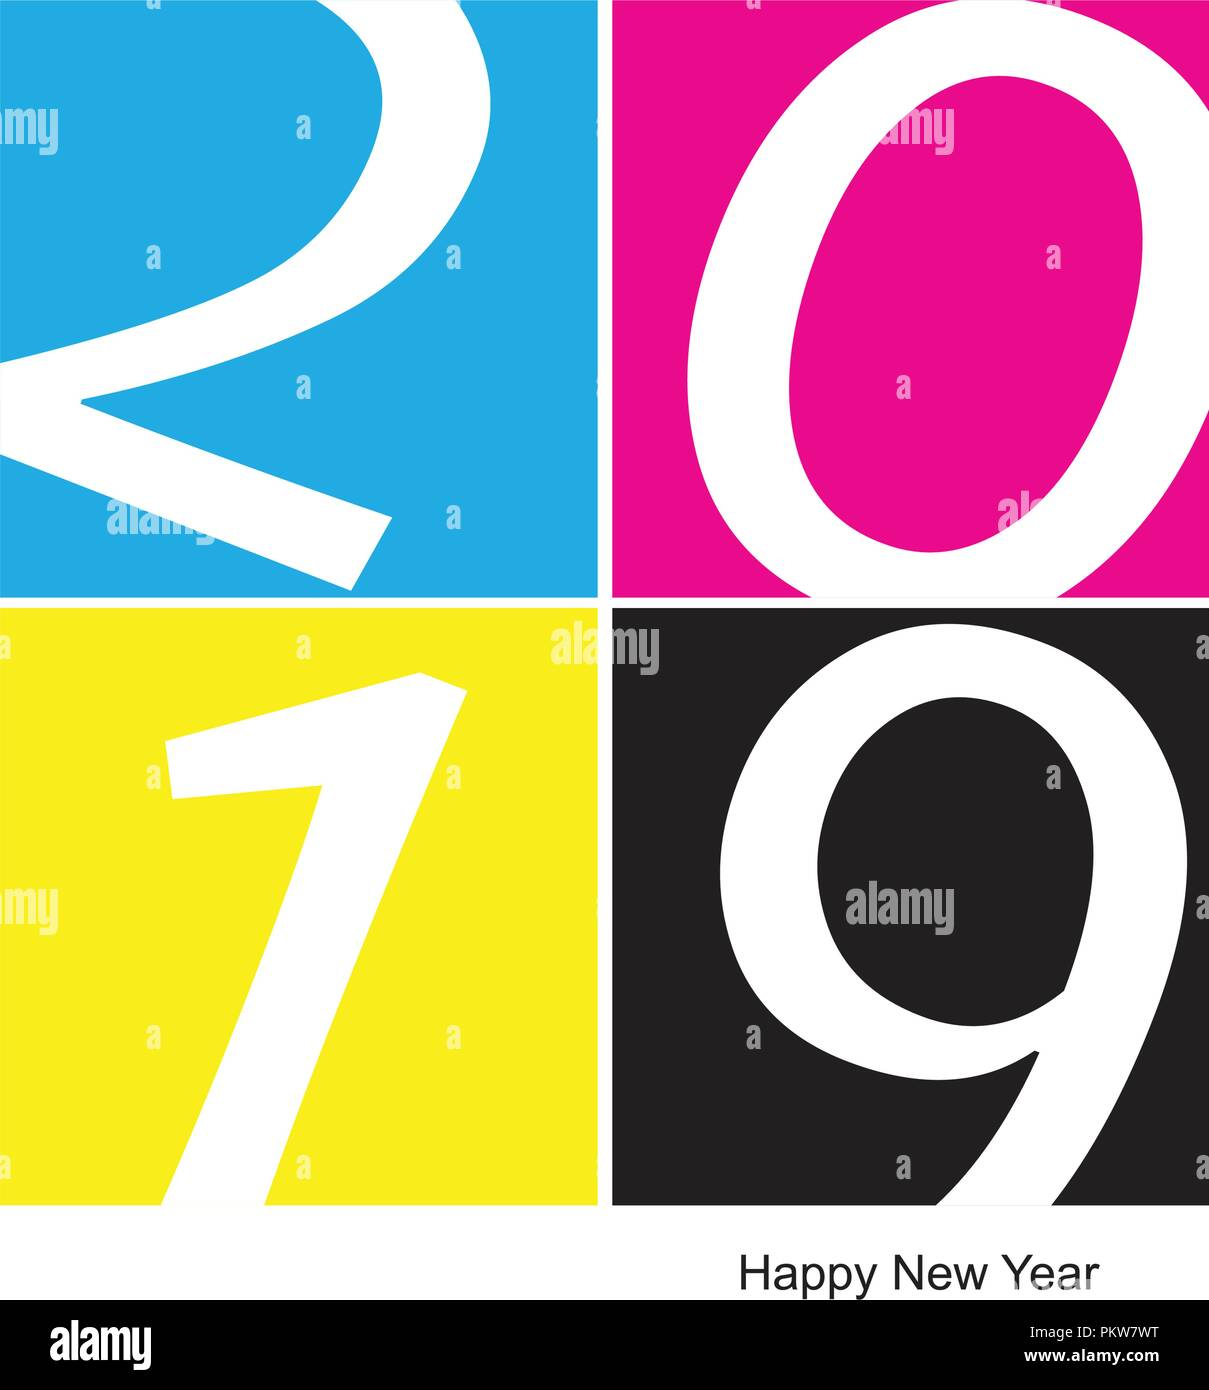 2019 happy new year CMYK offset printing background, Vector illustration - Stock Image